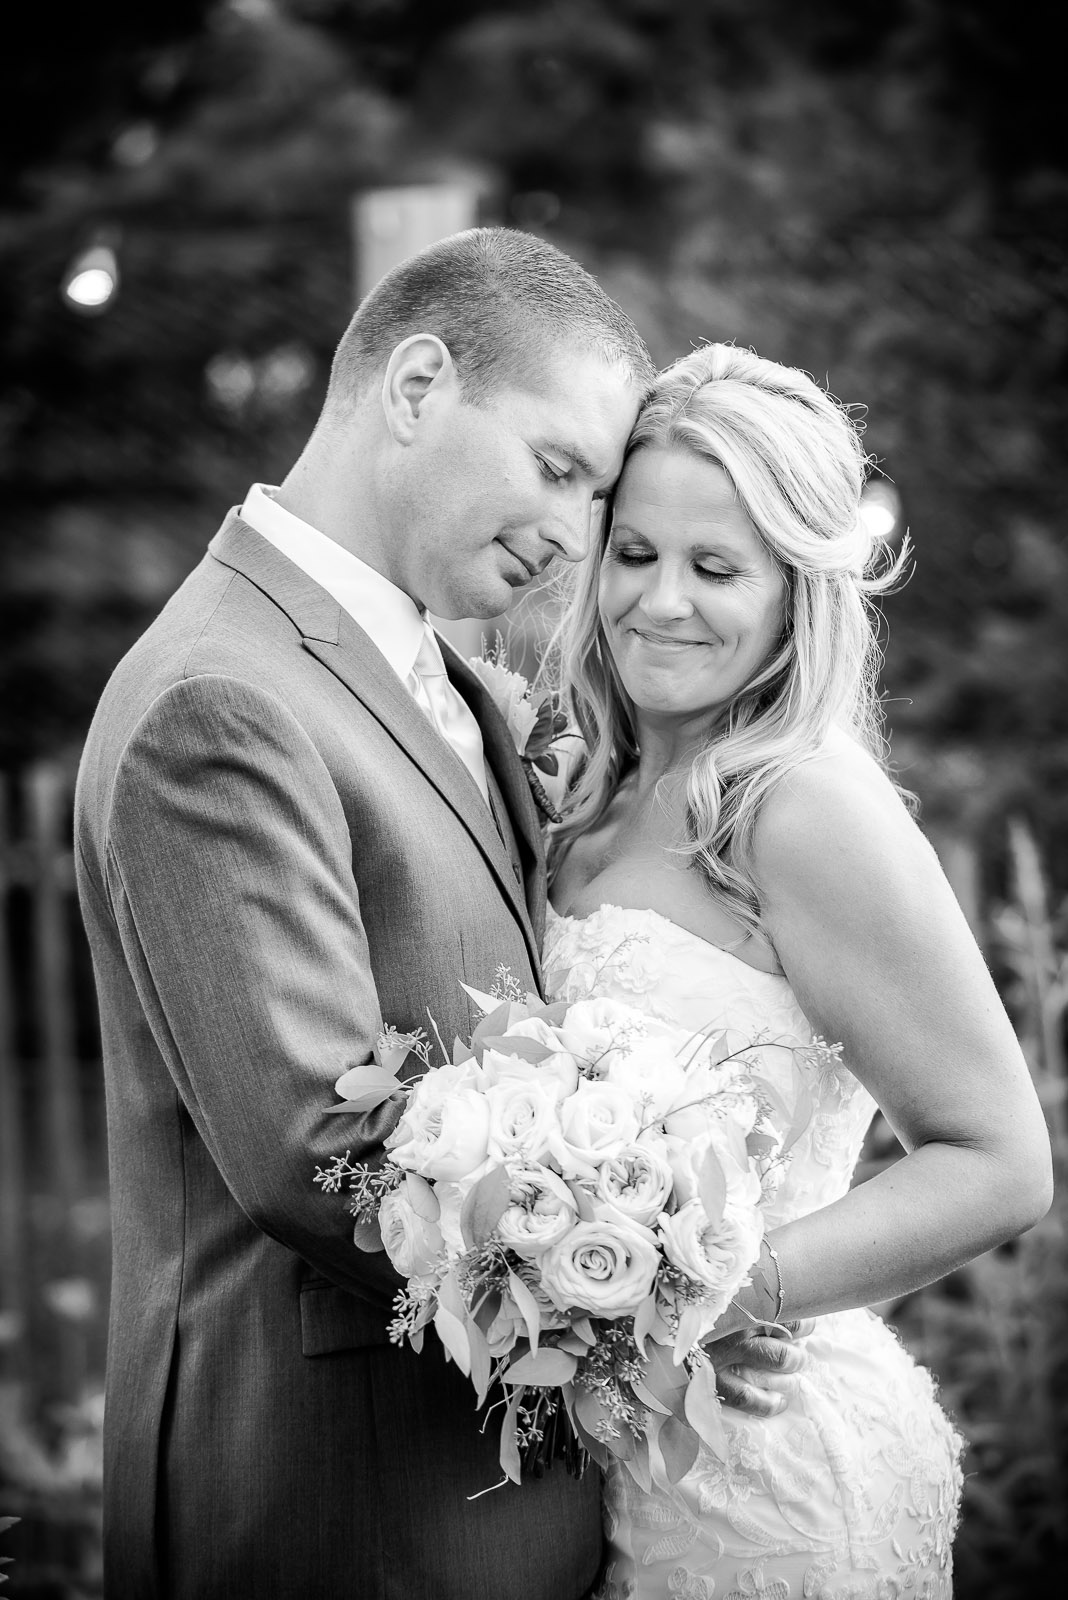 Eric_and_Christy_Photography_Blog_2016_Best_Wedding_Portraits-35